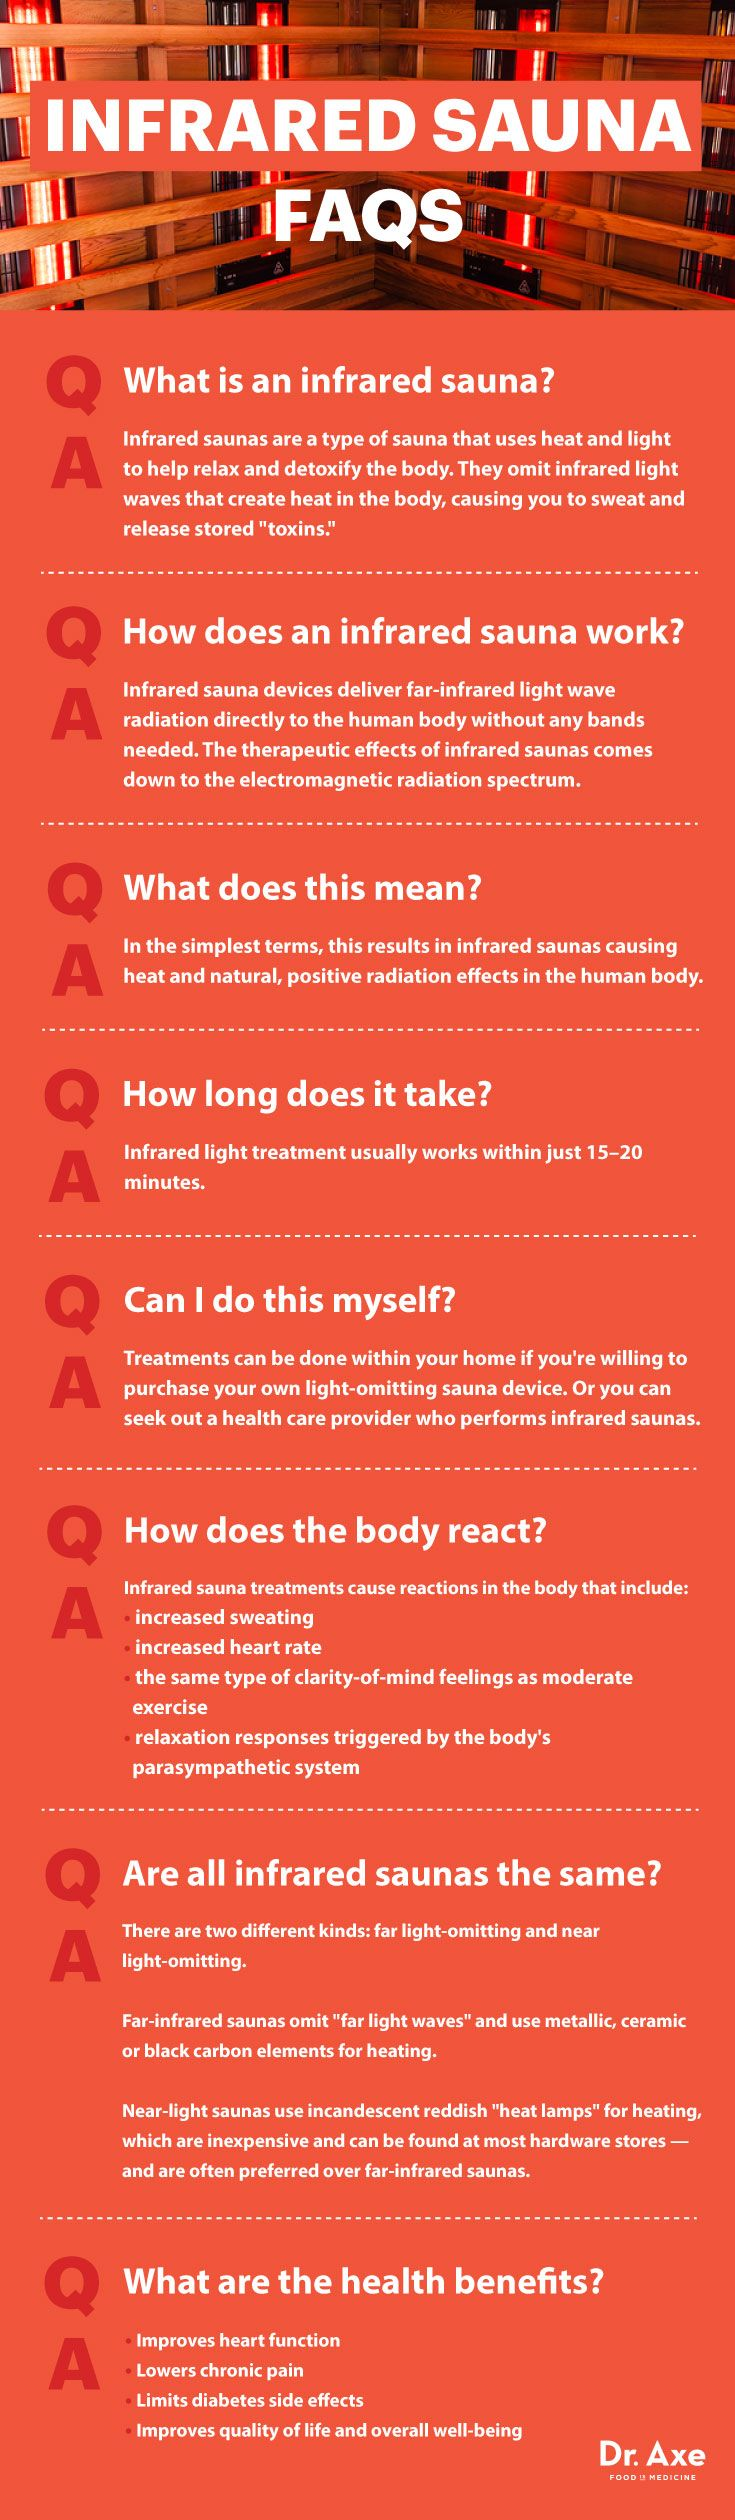 """Infrared saunas are a type of sauna that uses heat and light to help relax and detoxify the body. Also called far-infrared saunas or near-infrared saunas, these omit infrared light waves that create heat in the body, causing you to sweat and release stored """"toxins."""""""